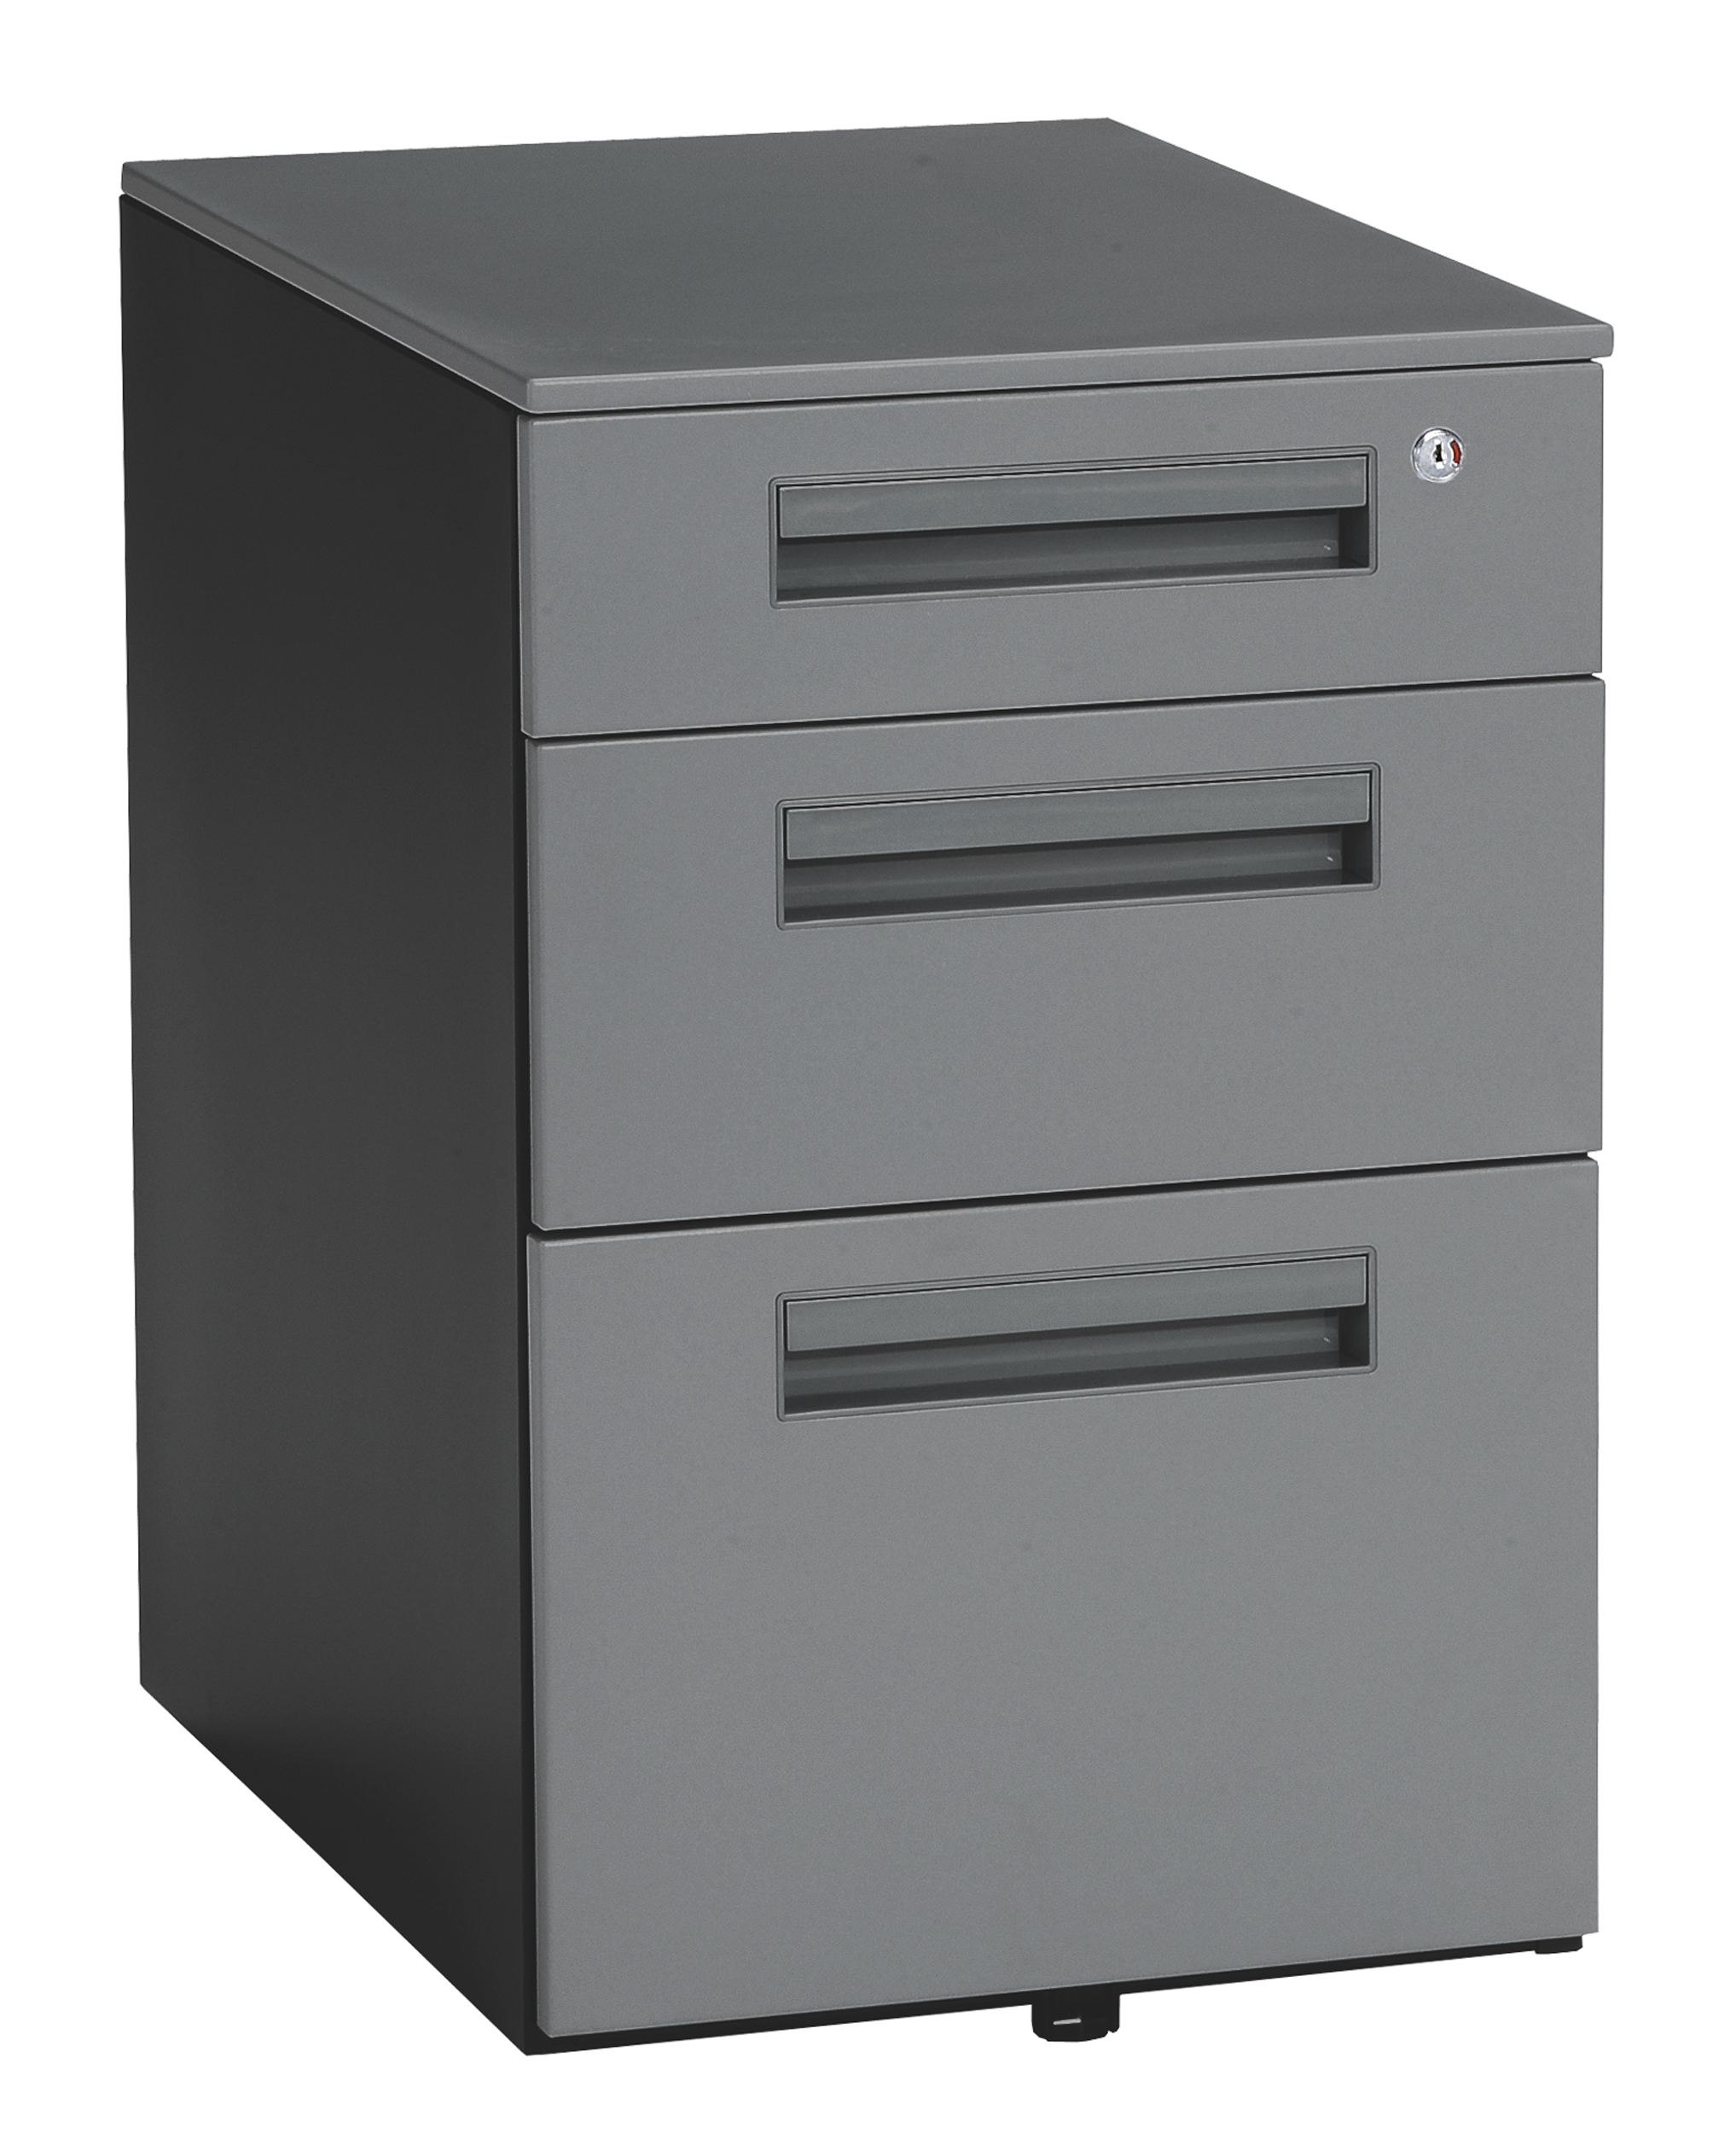 Charmant OFM Mesa Series Model 66300 Wheeled Mobile 3 Drawer Steel File Cabinet, Gray